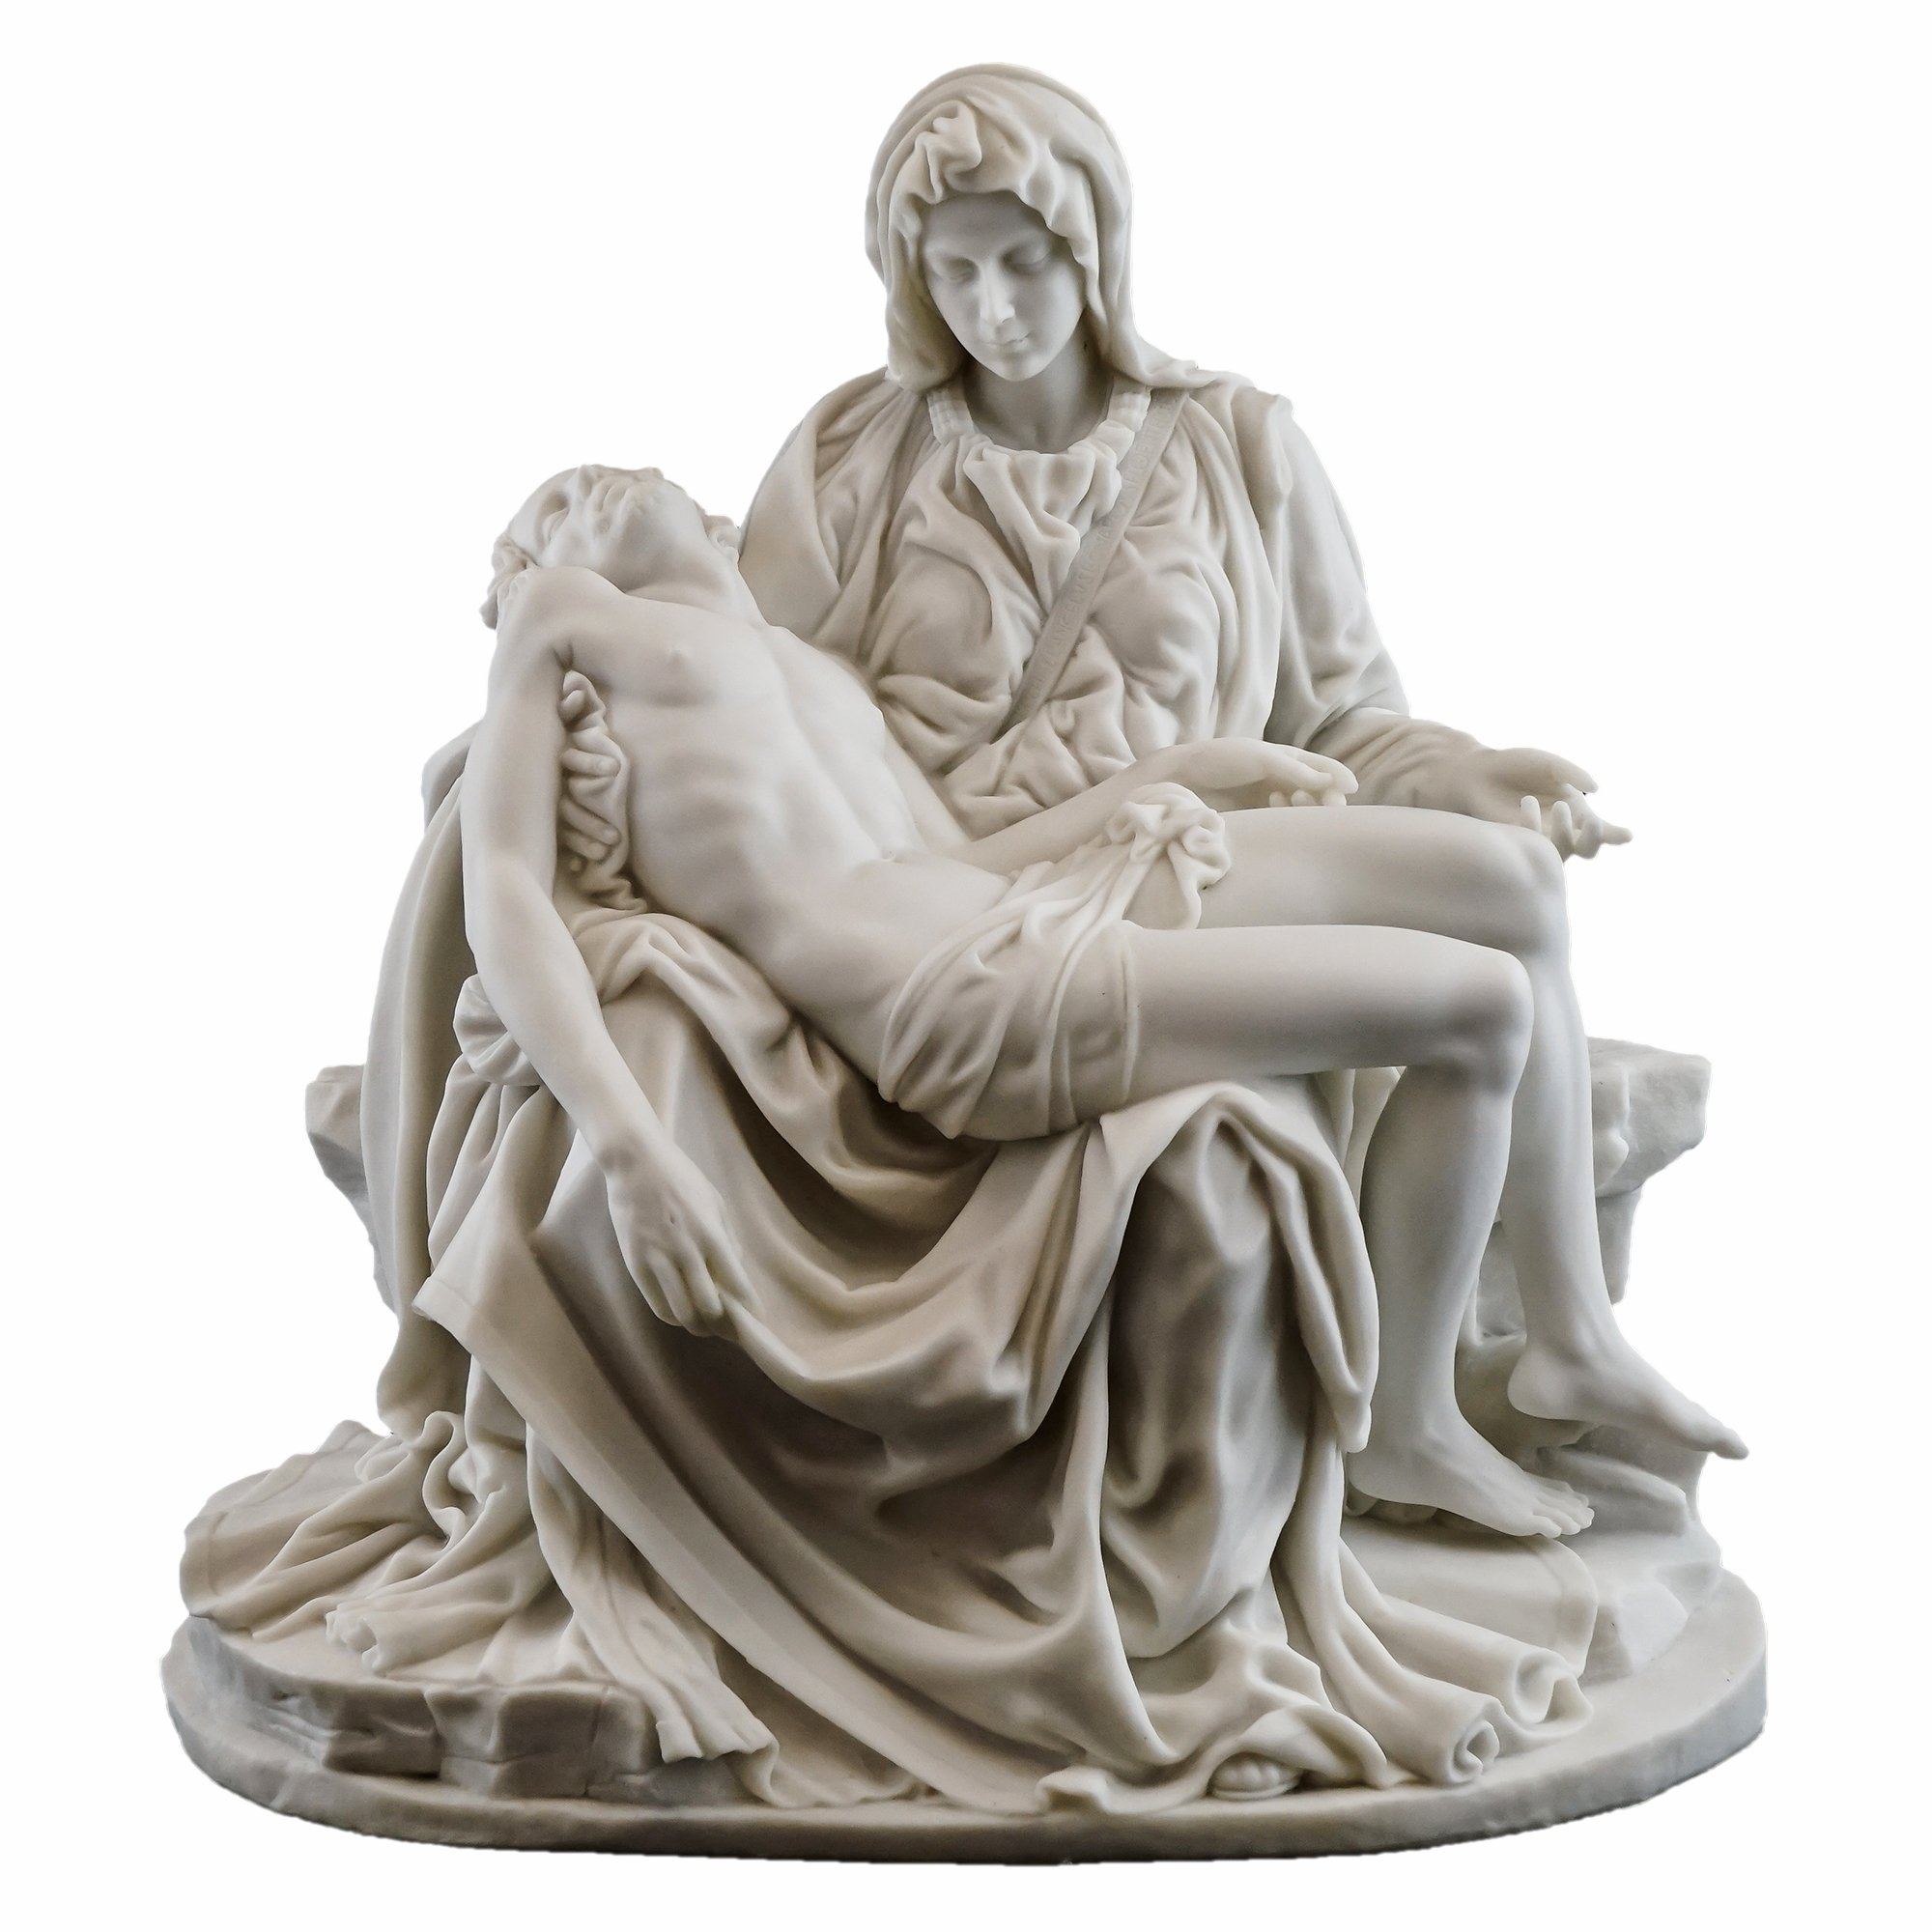 Top Collection H 10'' W 10'' La Pieta Statue by Michelangelo Buonarroti in White Marble Finish- Renaissance Sculpture by Top Collection